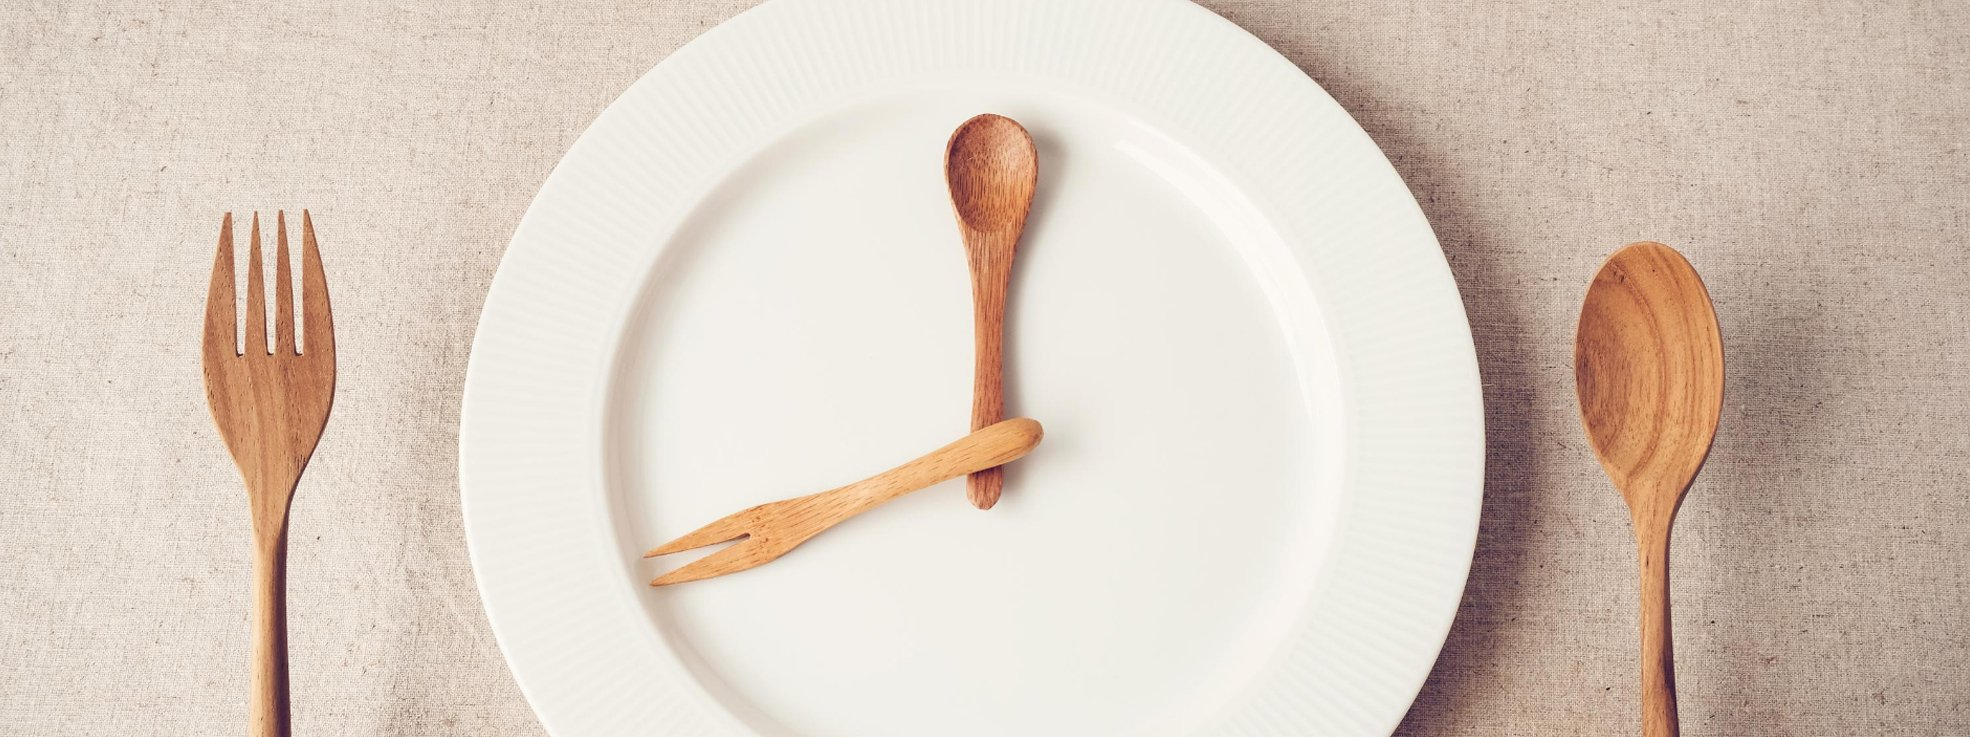 A Helpful Introduction To Intermittent Fasting